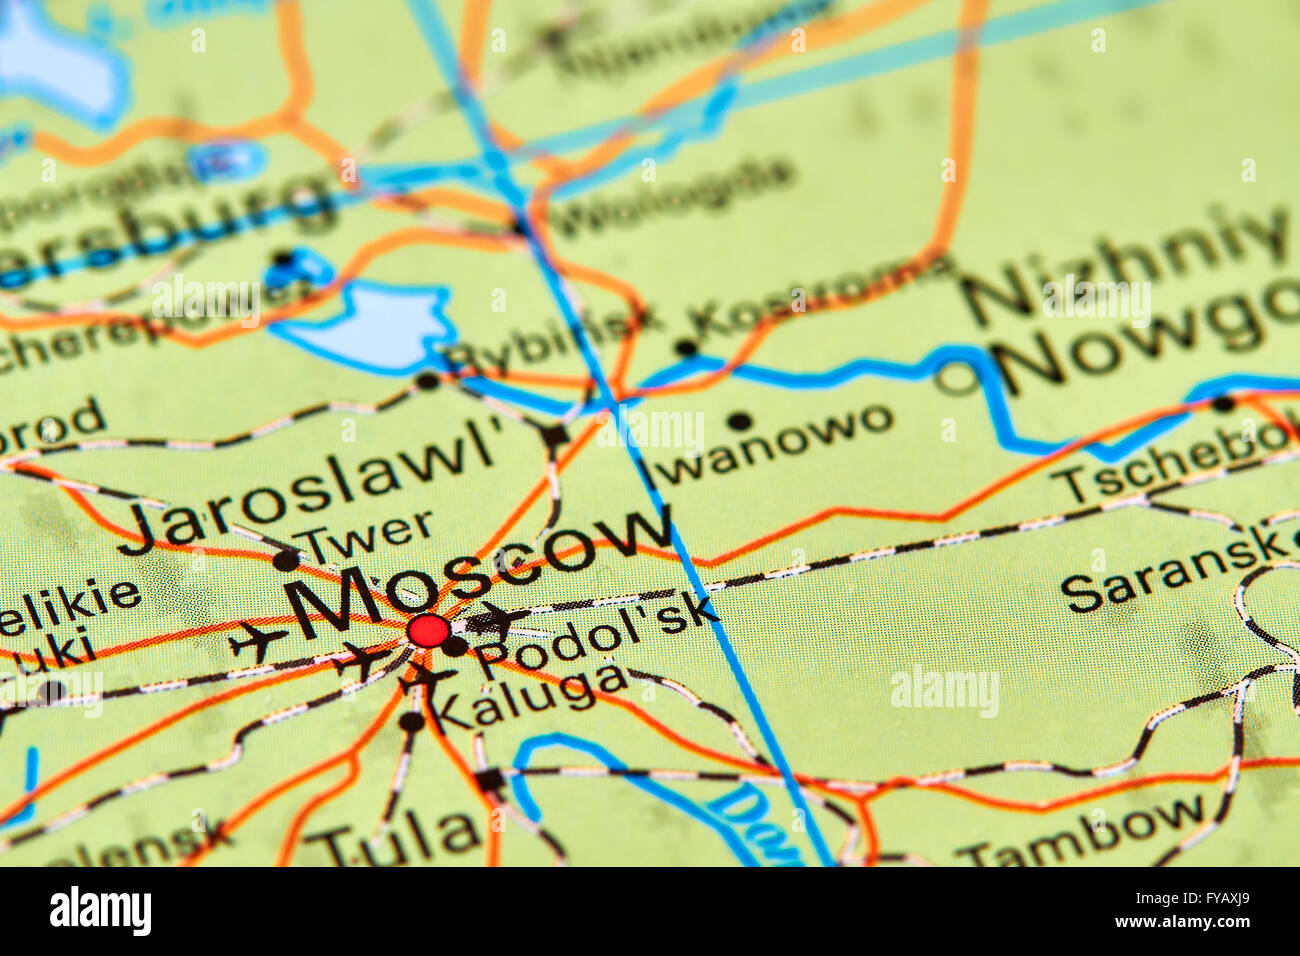 Moscow capital city of russia on the world map stock photo moscow capital city of russia on the world map gumiabroncs Images